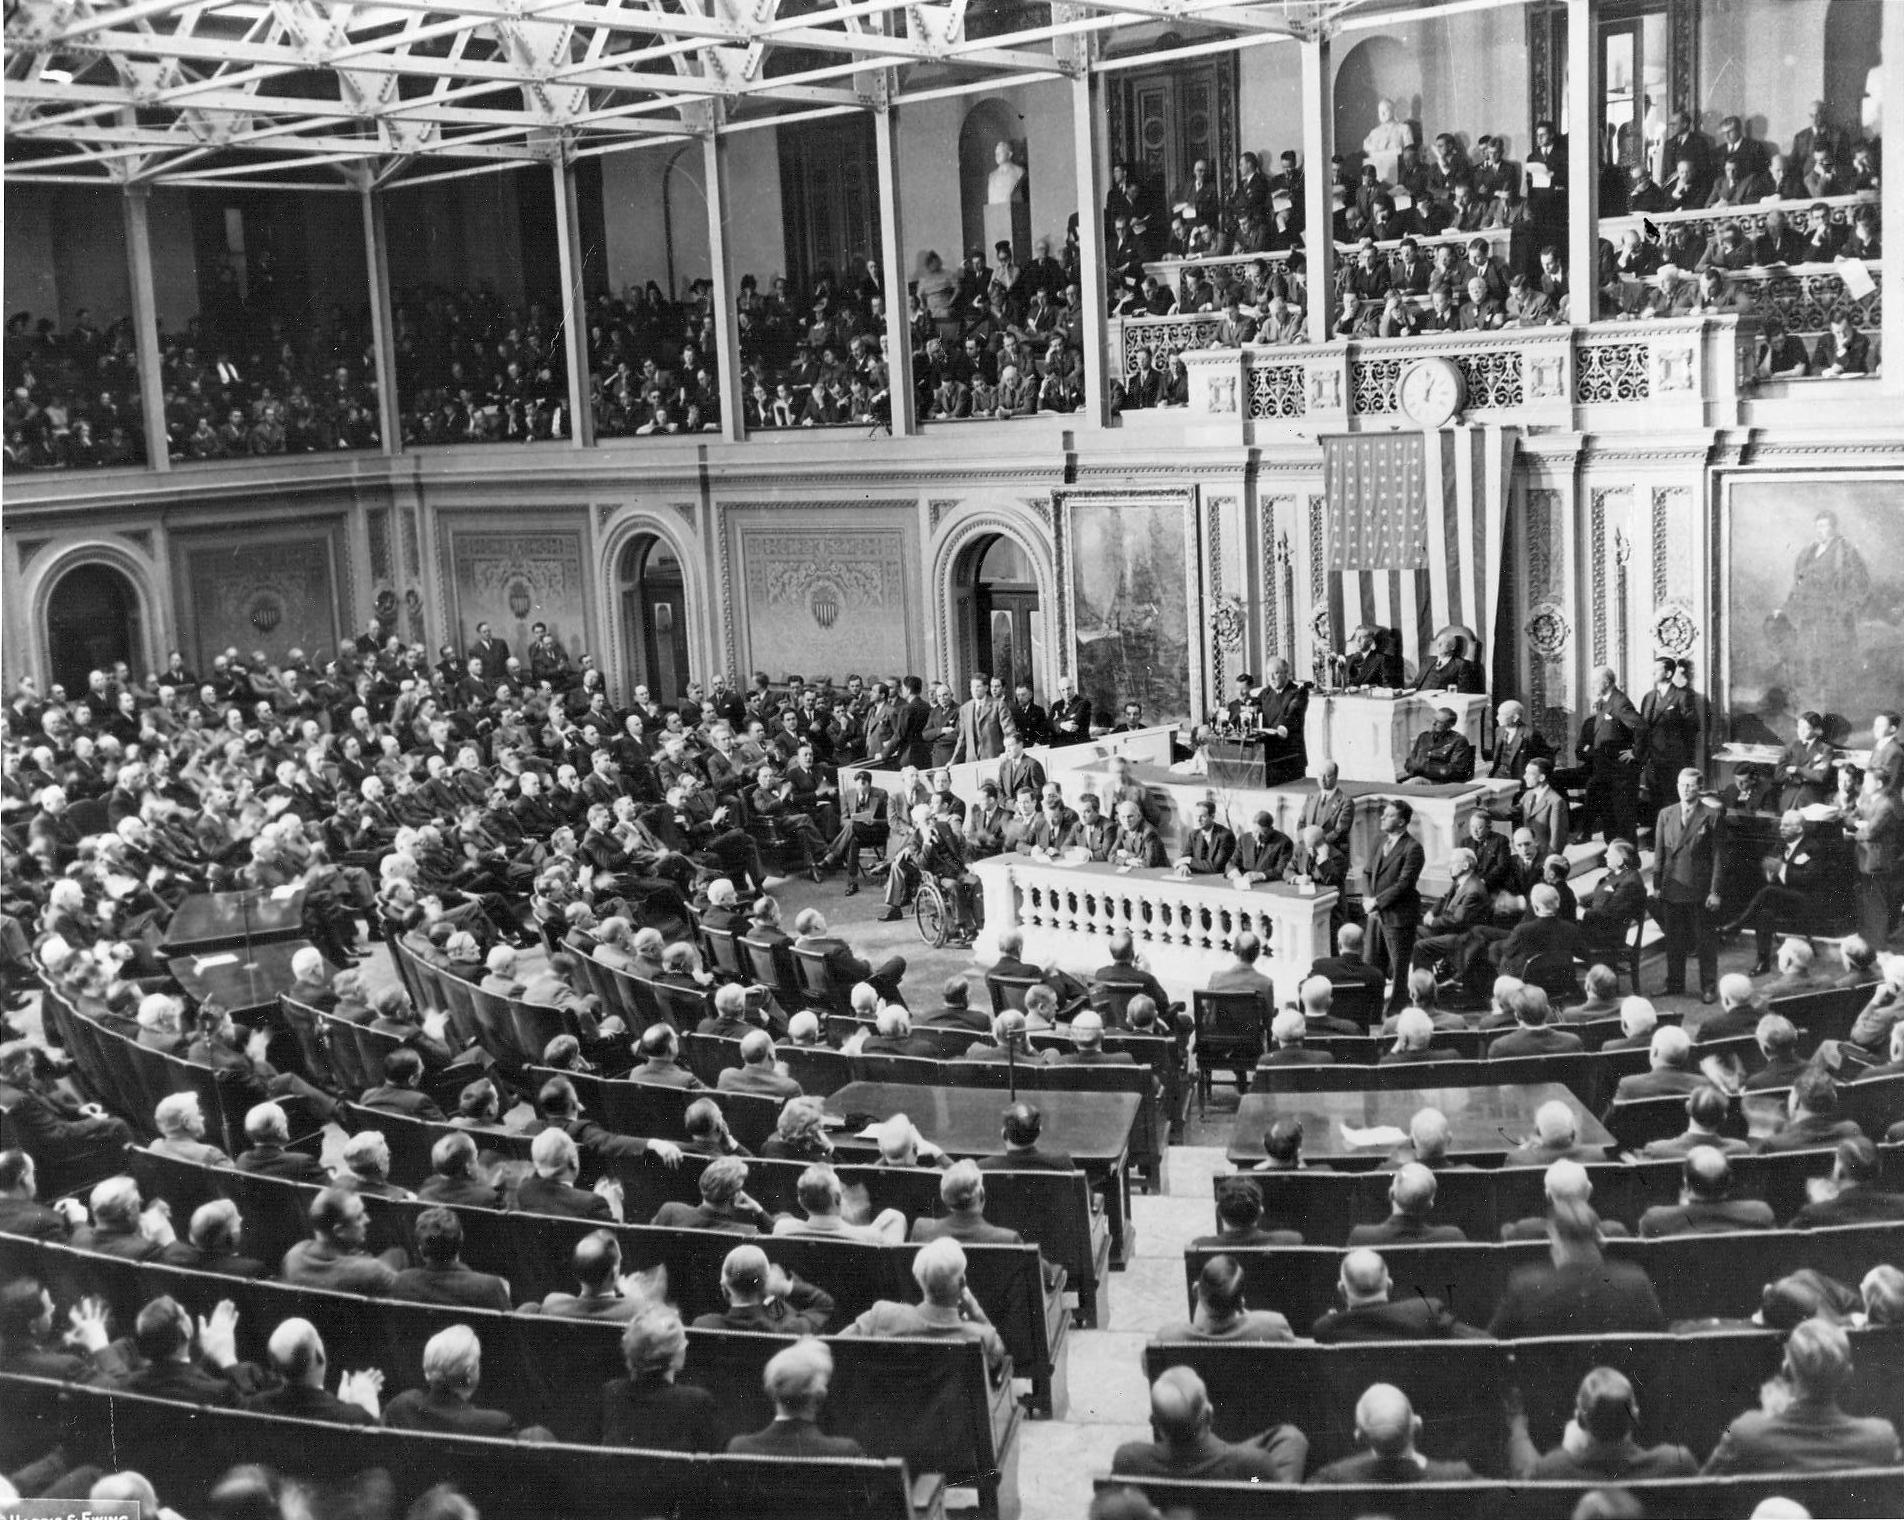 President Franklin Roosevelt delivering his State of the Union address to Congress, 6 Jan 1941 (US National Archives)